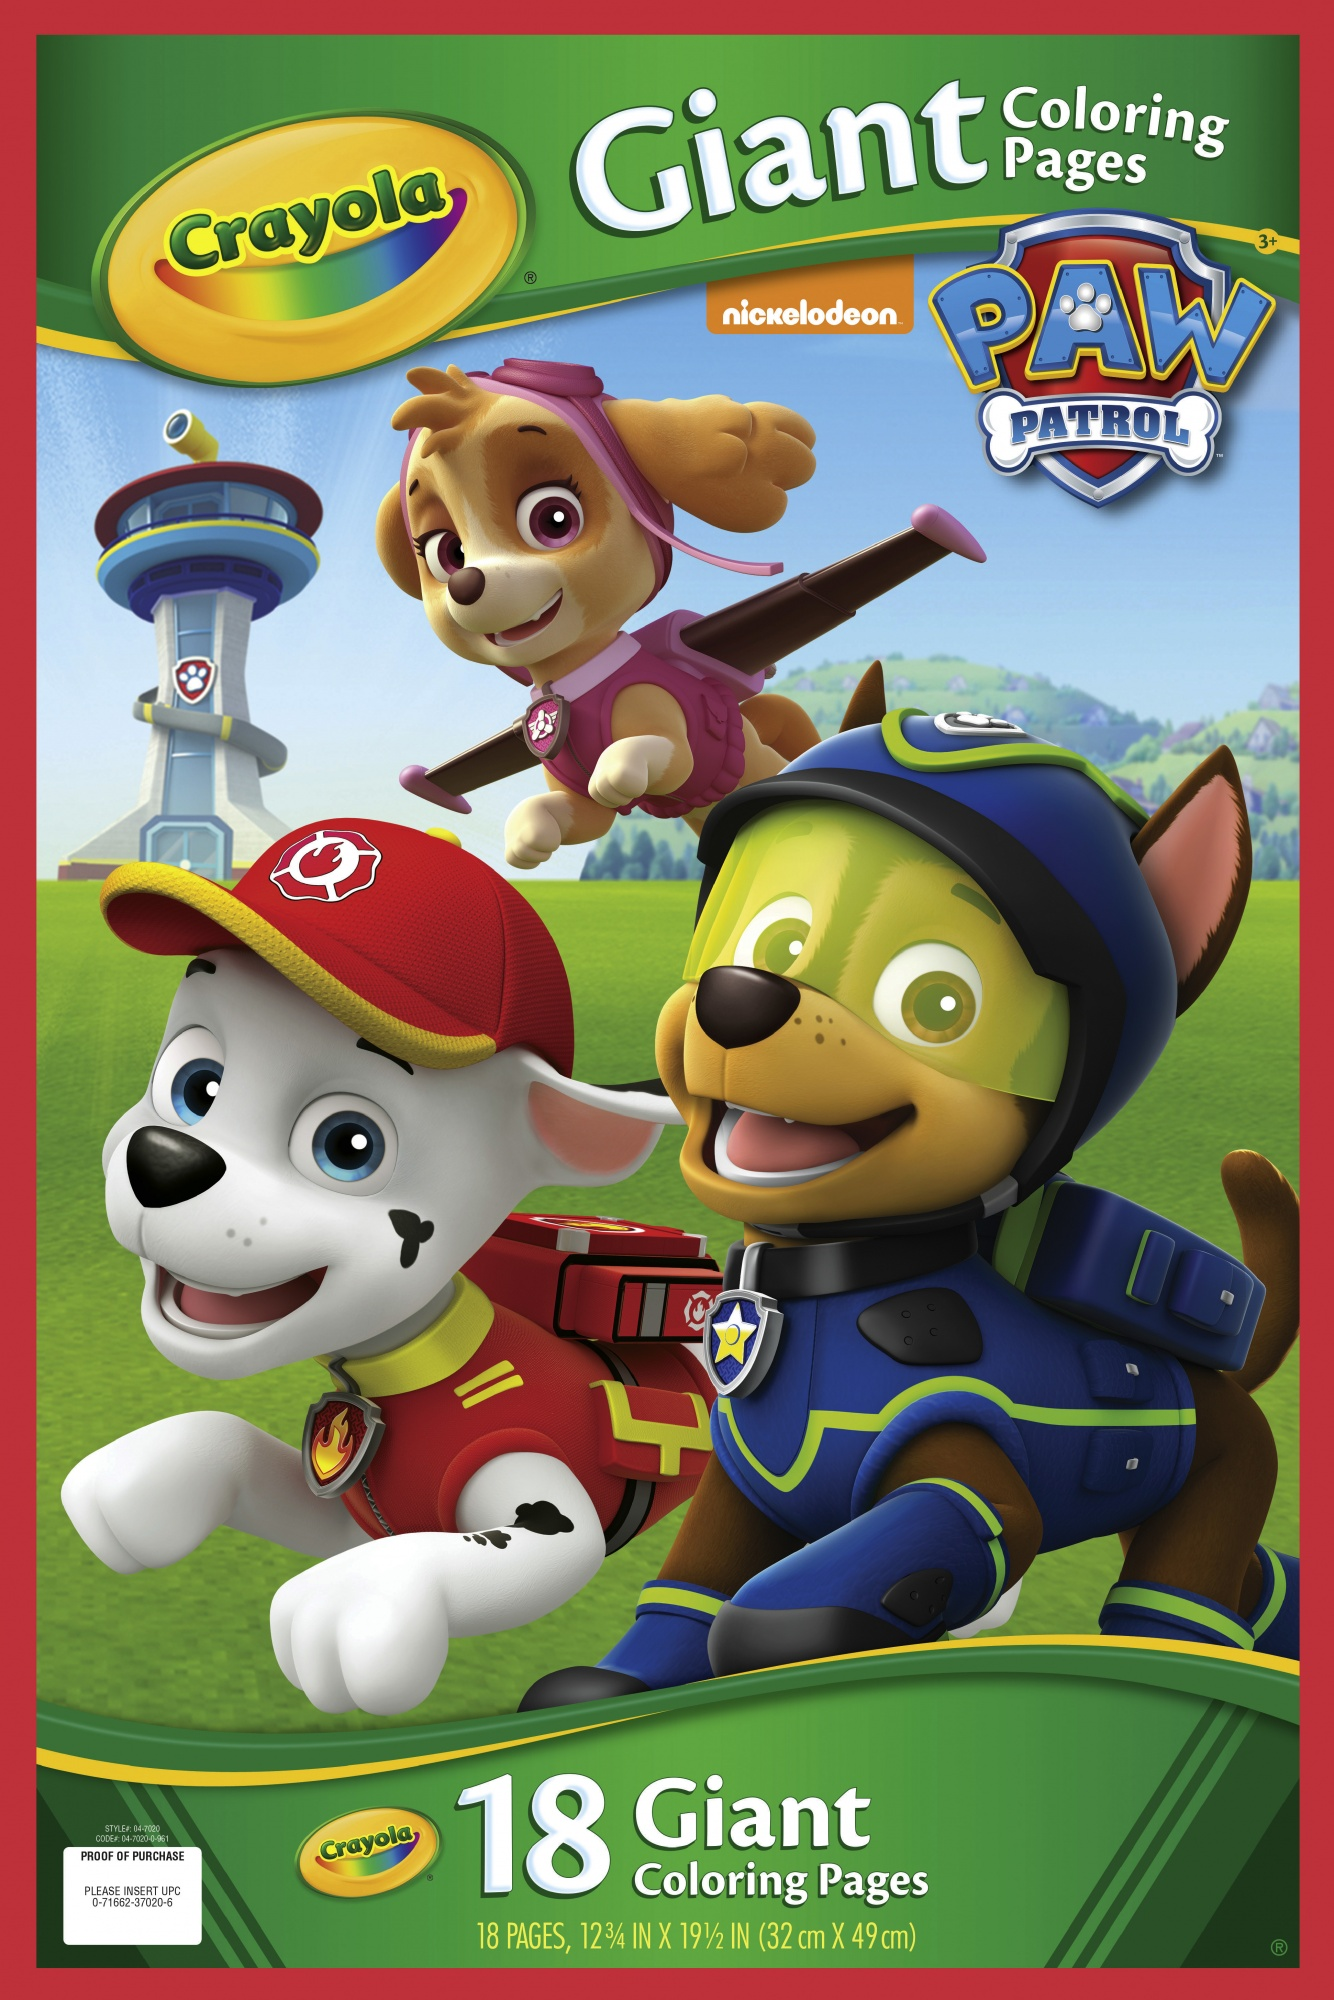 Crayola Giant Coloring Pages Paw Patrol 32 X 49 Cm 18 Pcs Internet